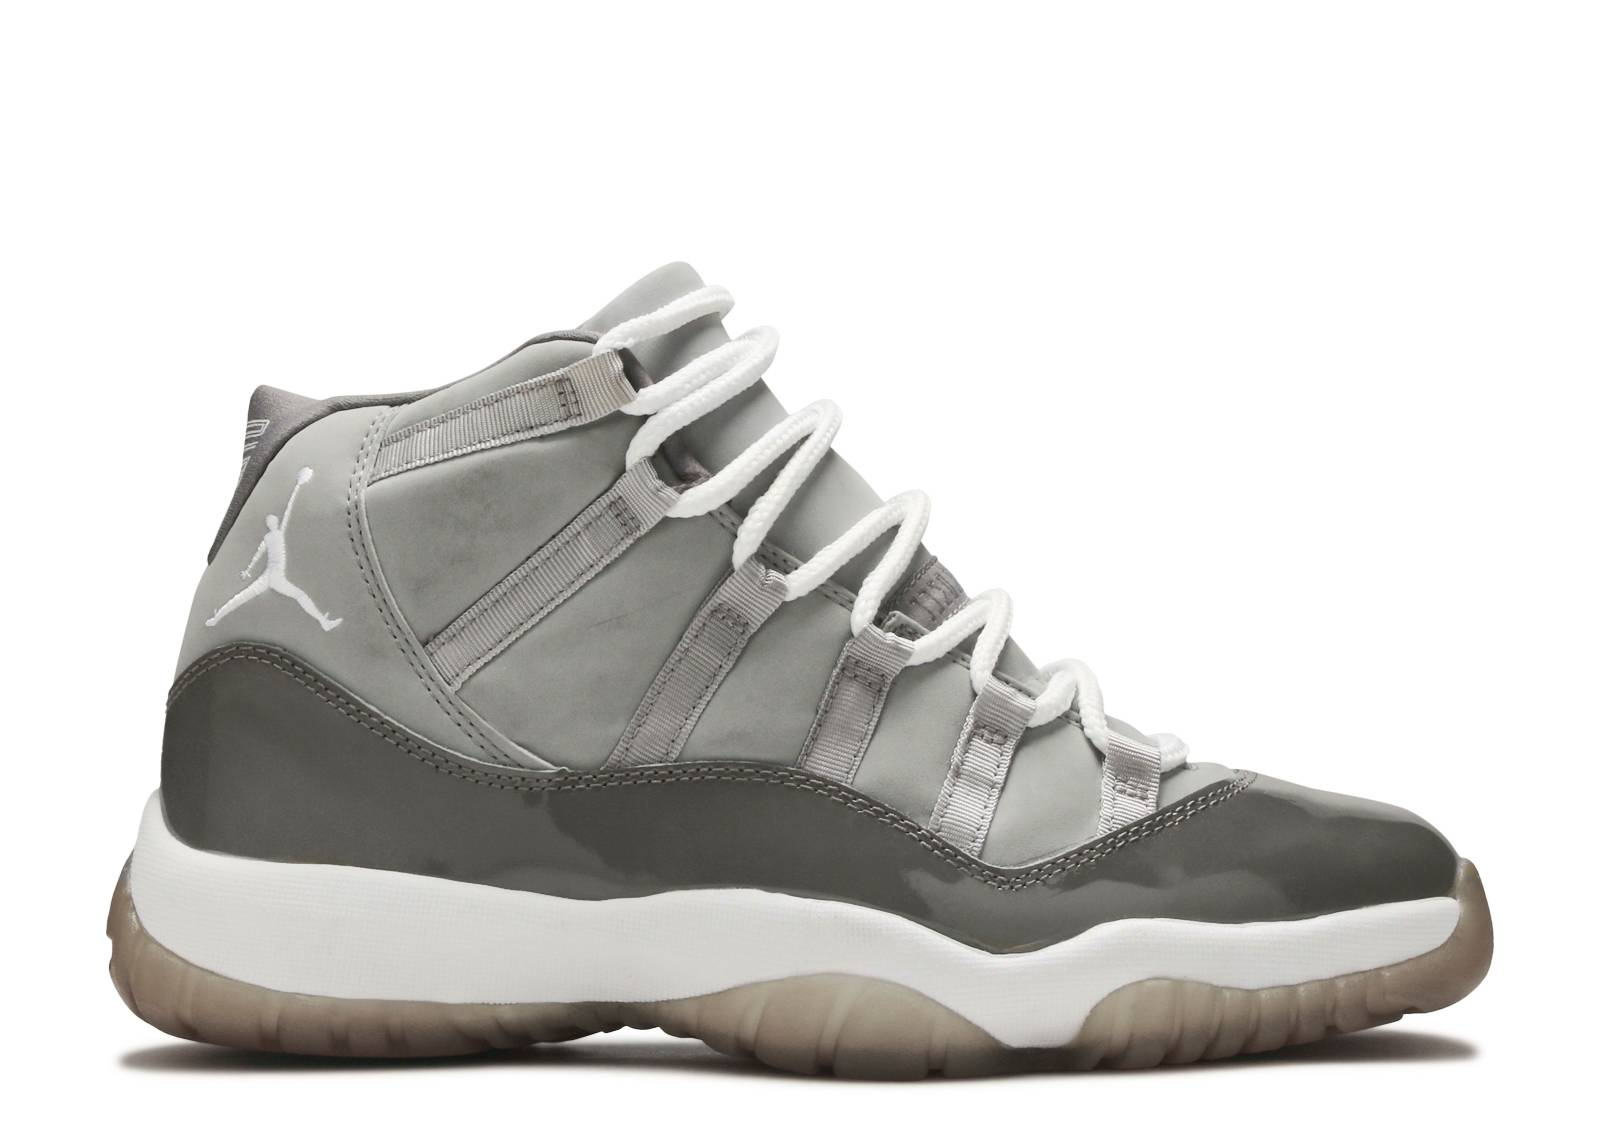 Jordan 11 Retro Low Cool Grey Mens. NIKE Mens Air Jordan XI 11 Retro Low TD Football Cleats. by NIKE. $ - $ $ $ 00 Prime. FREE Shipping on eligible orders. Some sizes/colors are Prime eligible. 1 out of 5 stars 1. Product Description.